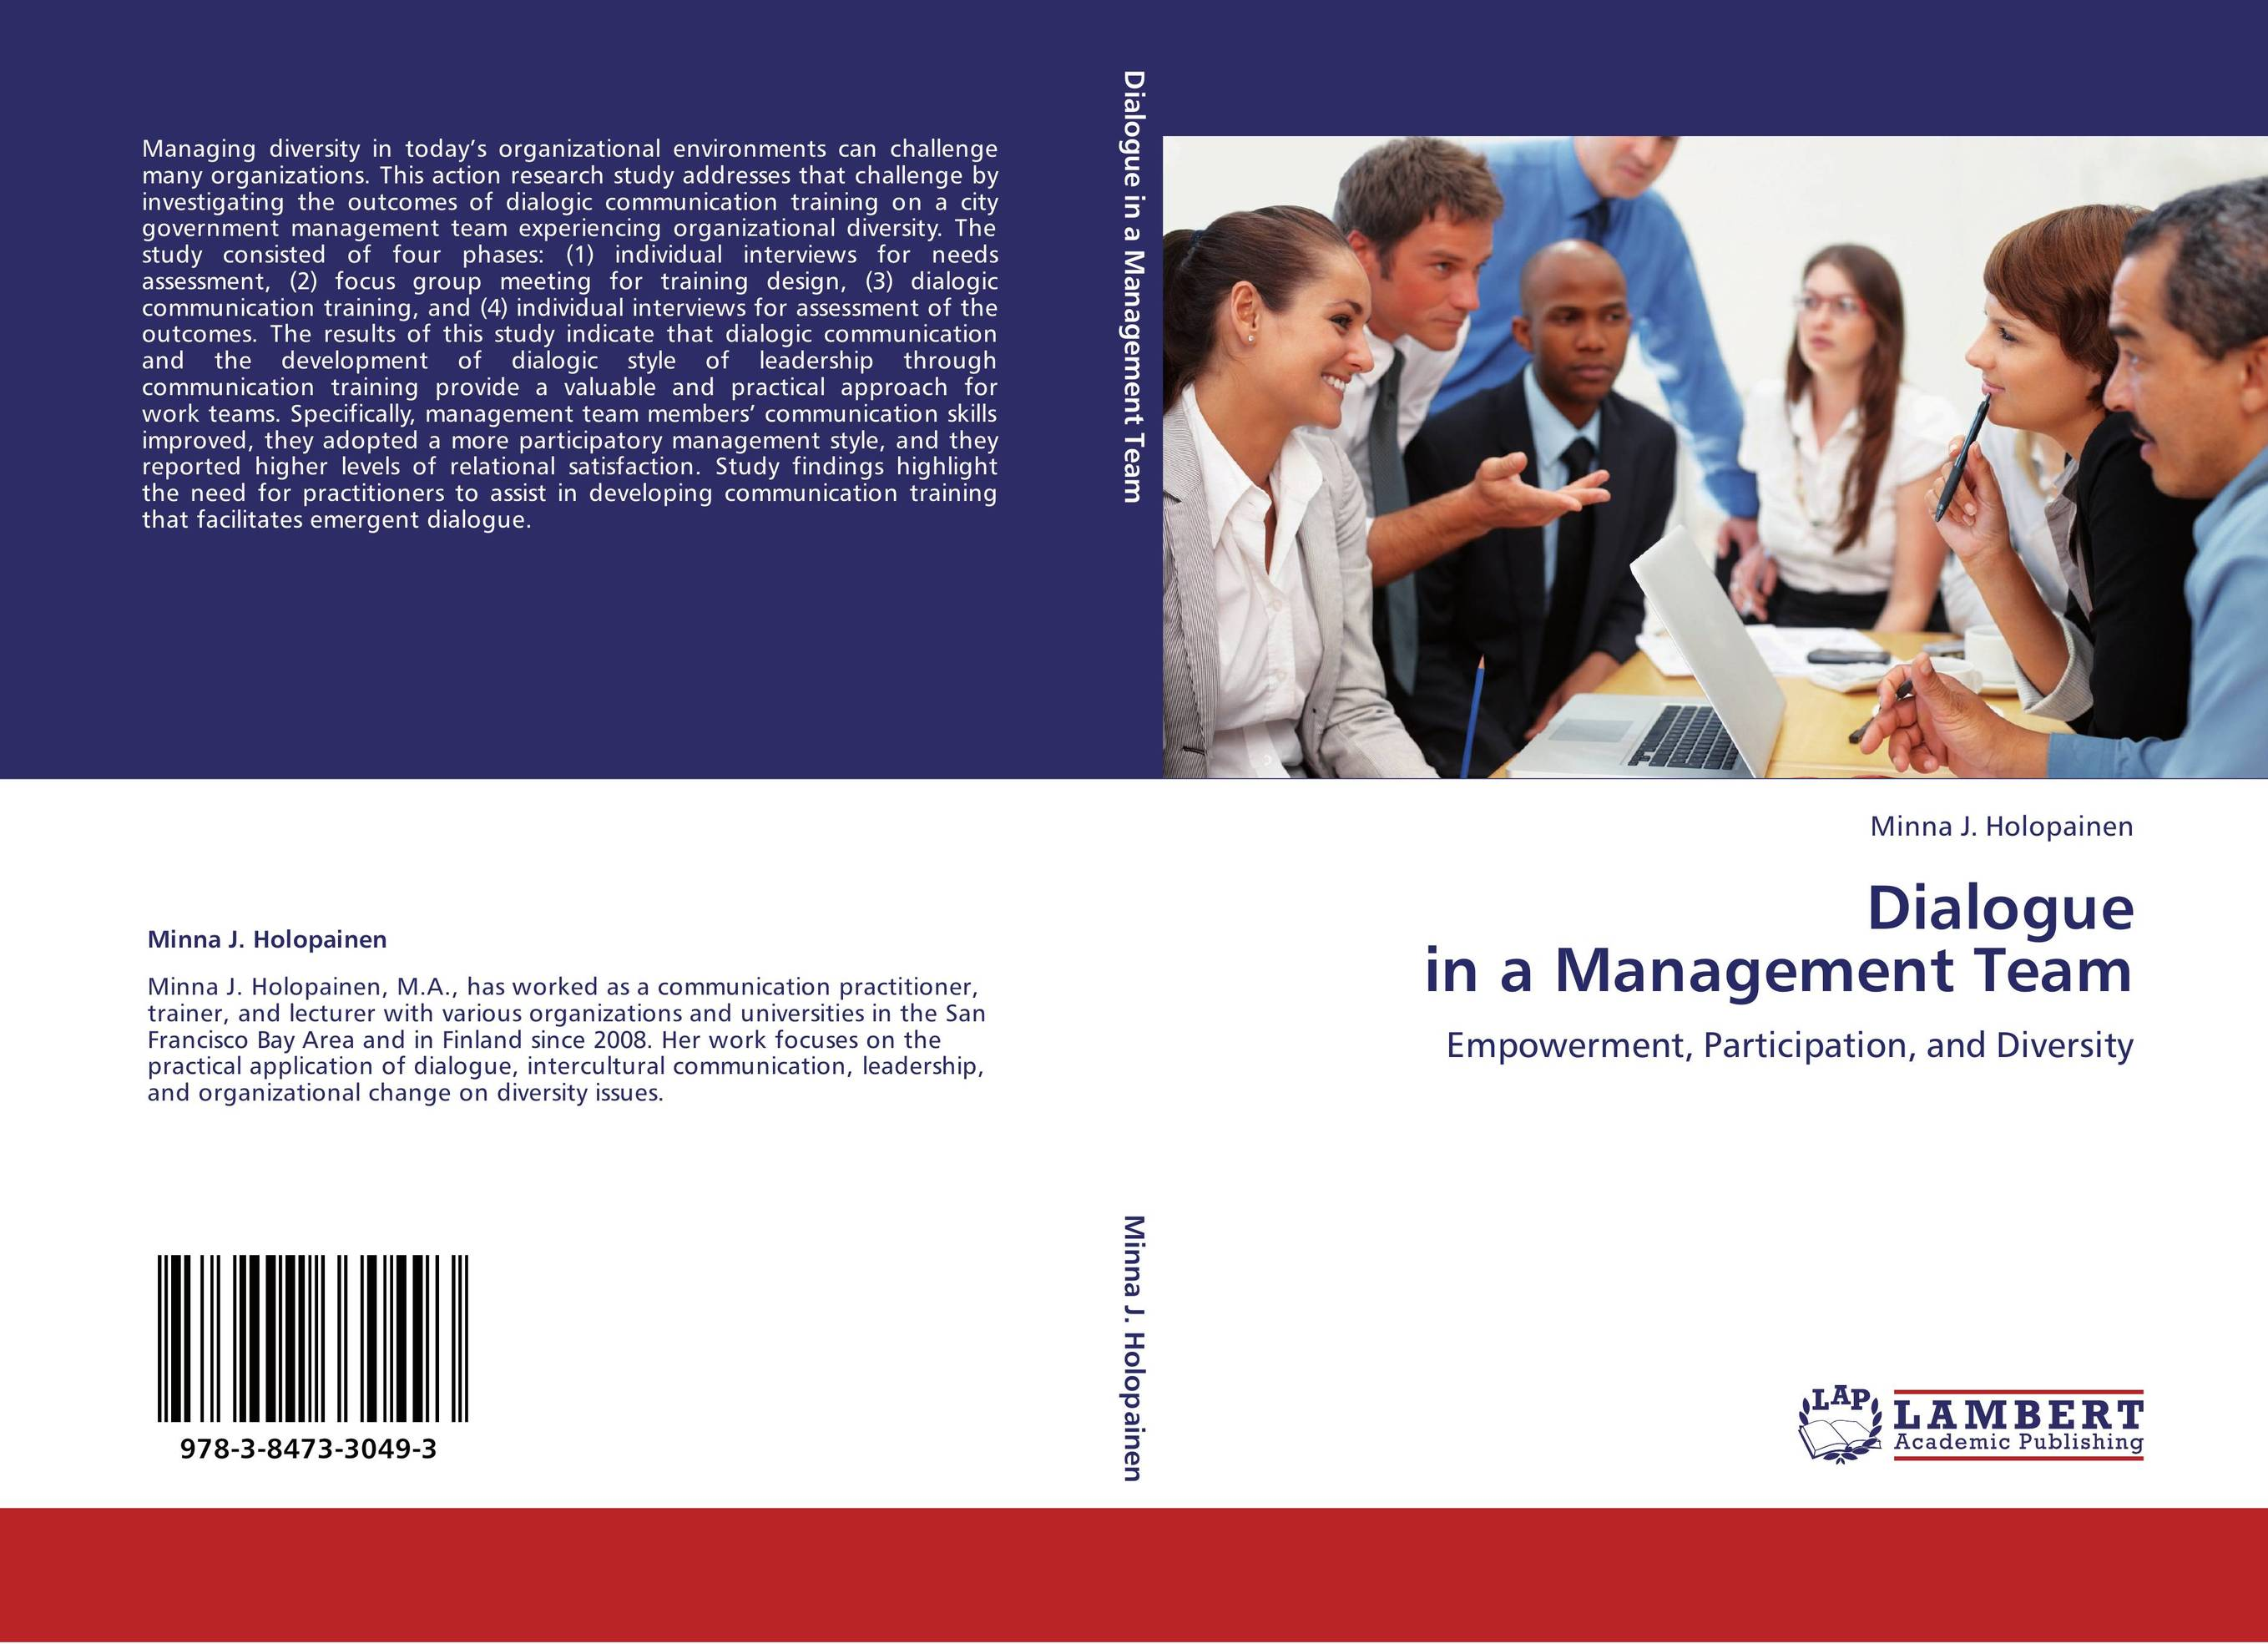 organisational environment The organizational environment the use of information technology is depends on the environment sounding to the organization the environment include economic condition of principle resources that is called organizational environment.